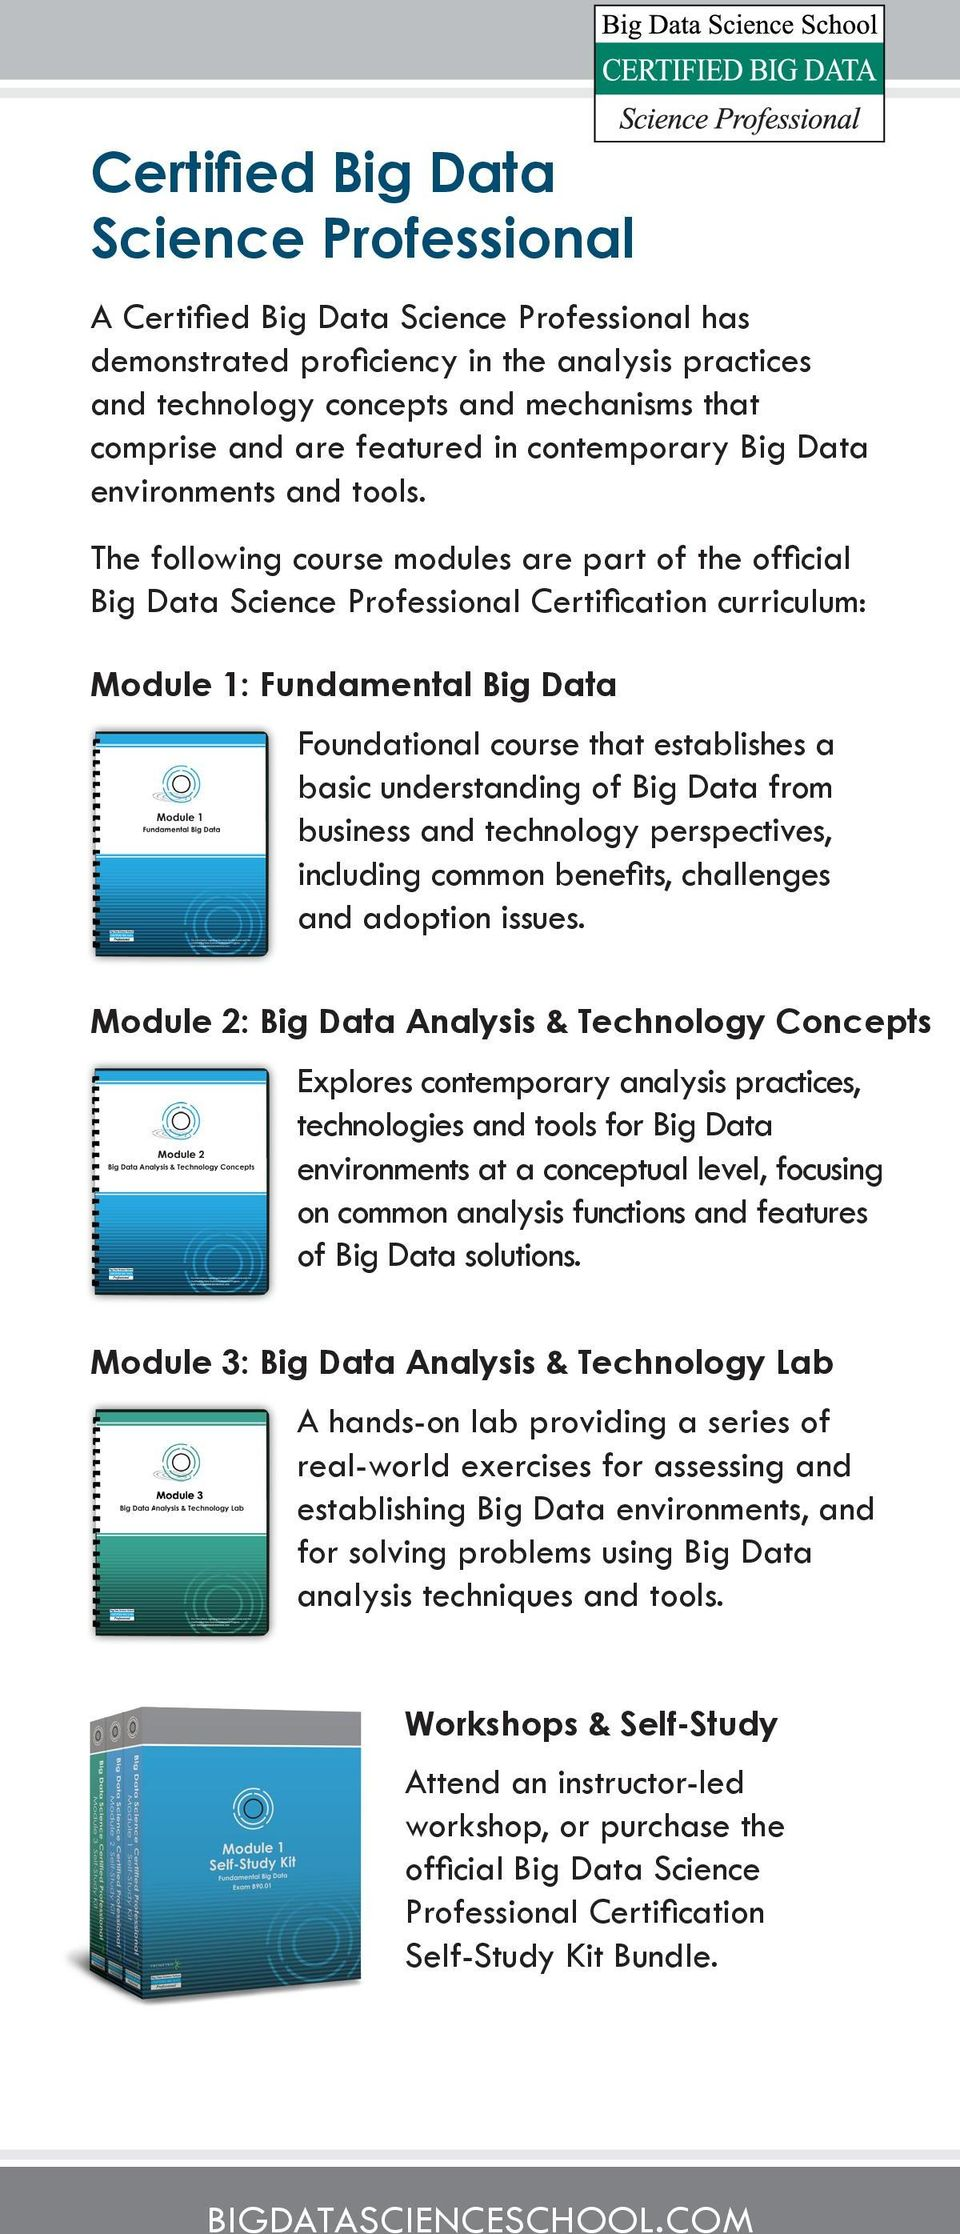 The following course modules are part of the official Big Data Science Professional Certification curriculum: Module 1: Fundamental Big Data Foundational course that establishes a basic understanding